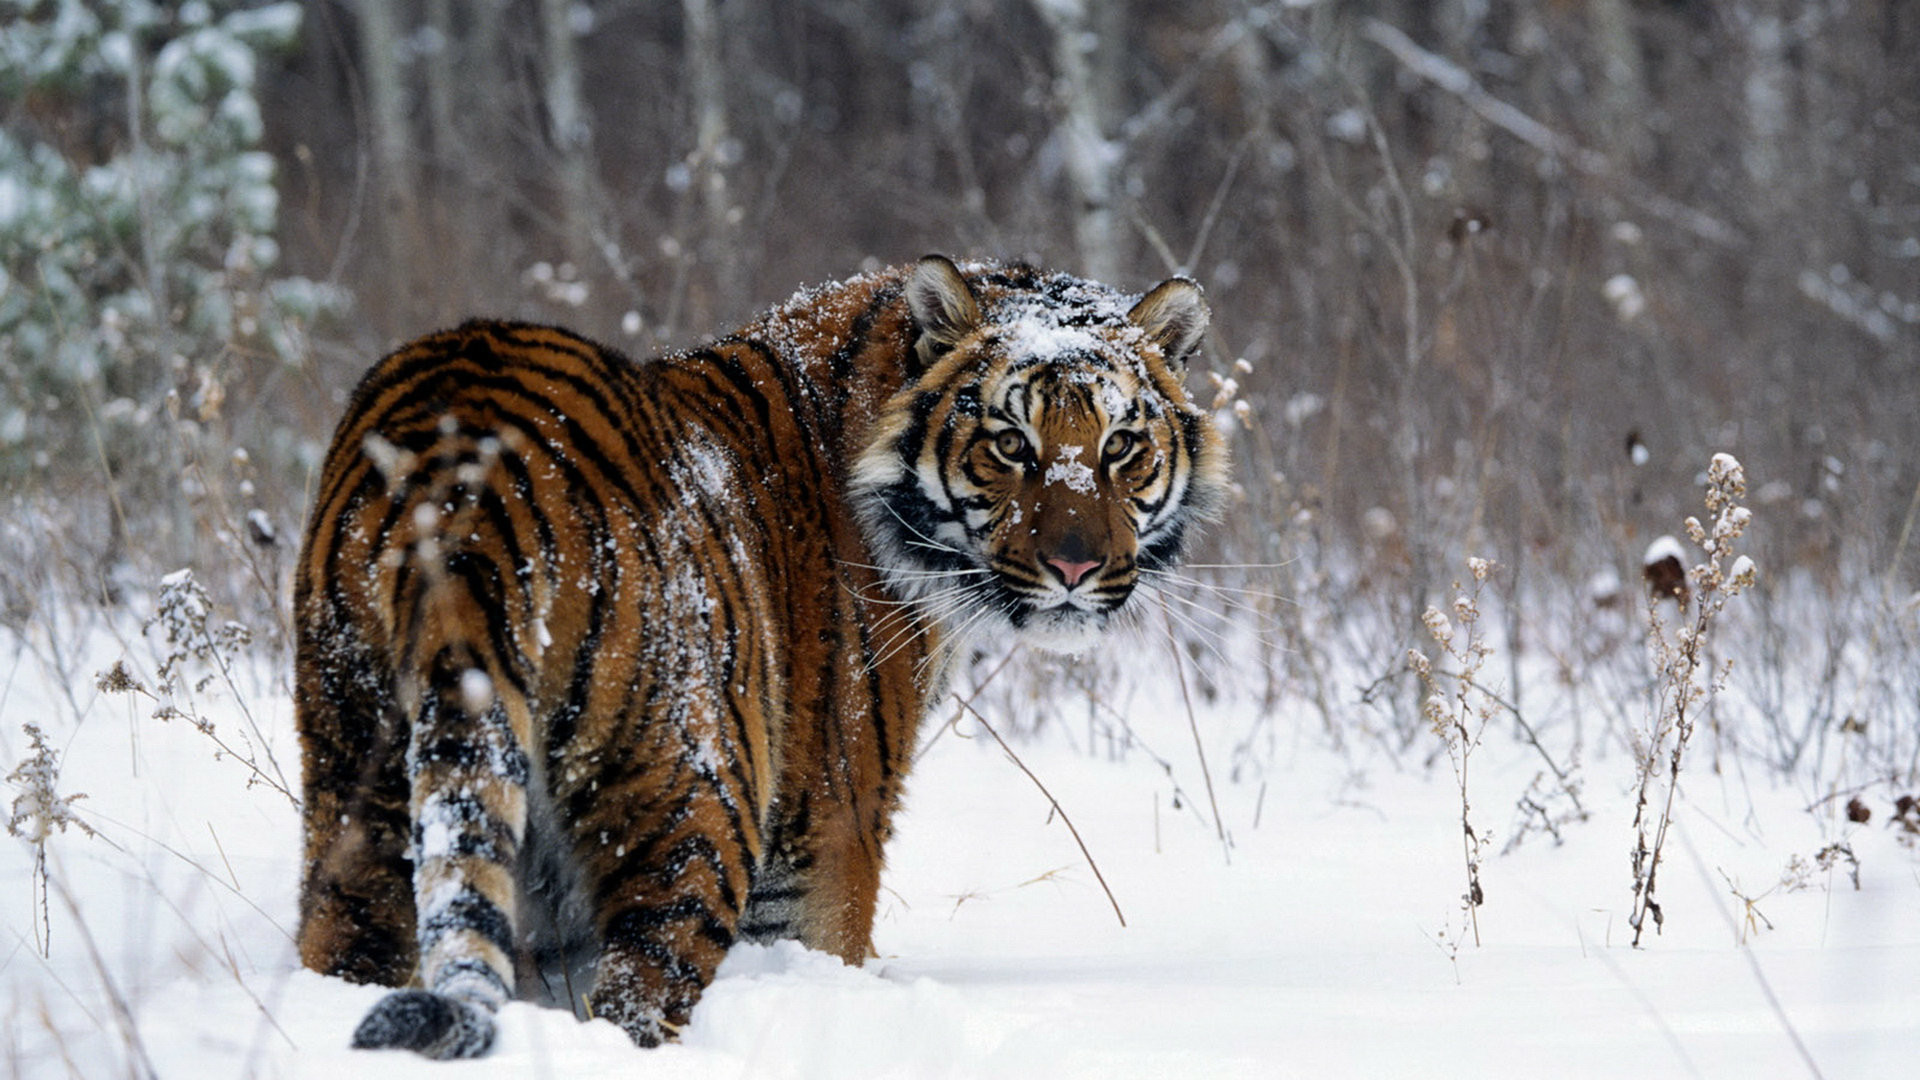 Snowy Tiger Wallpapers